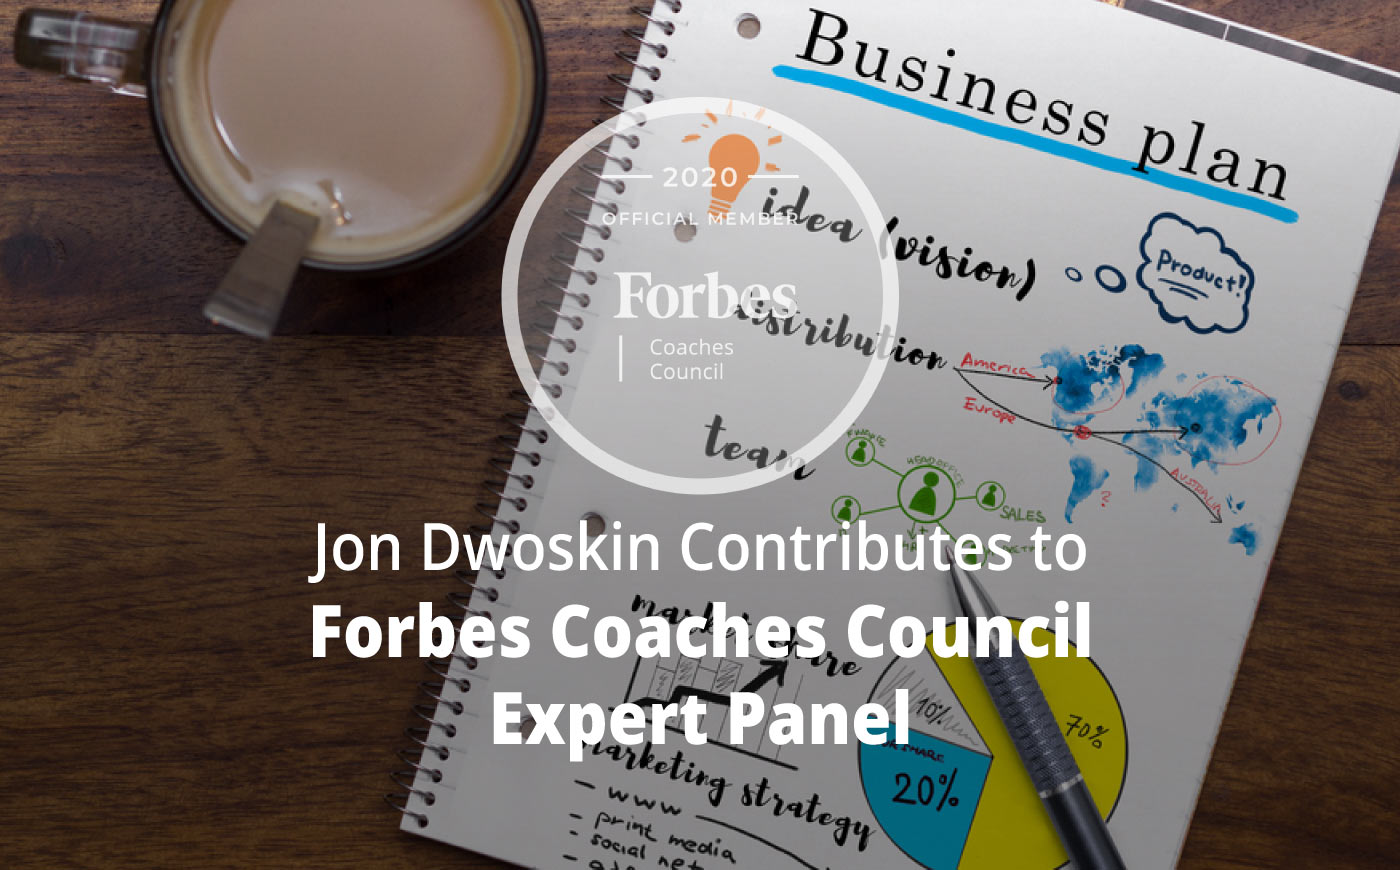 Jon Dwoskin Contributes to Forbes Coaches Council Expert Panel: Don't Make These 16 Common Mistakes Of New Business Owners